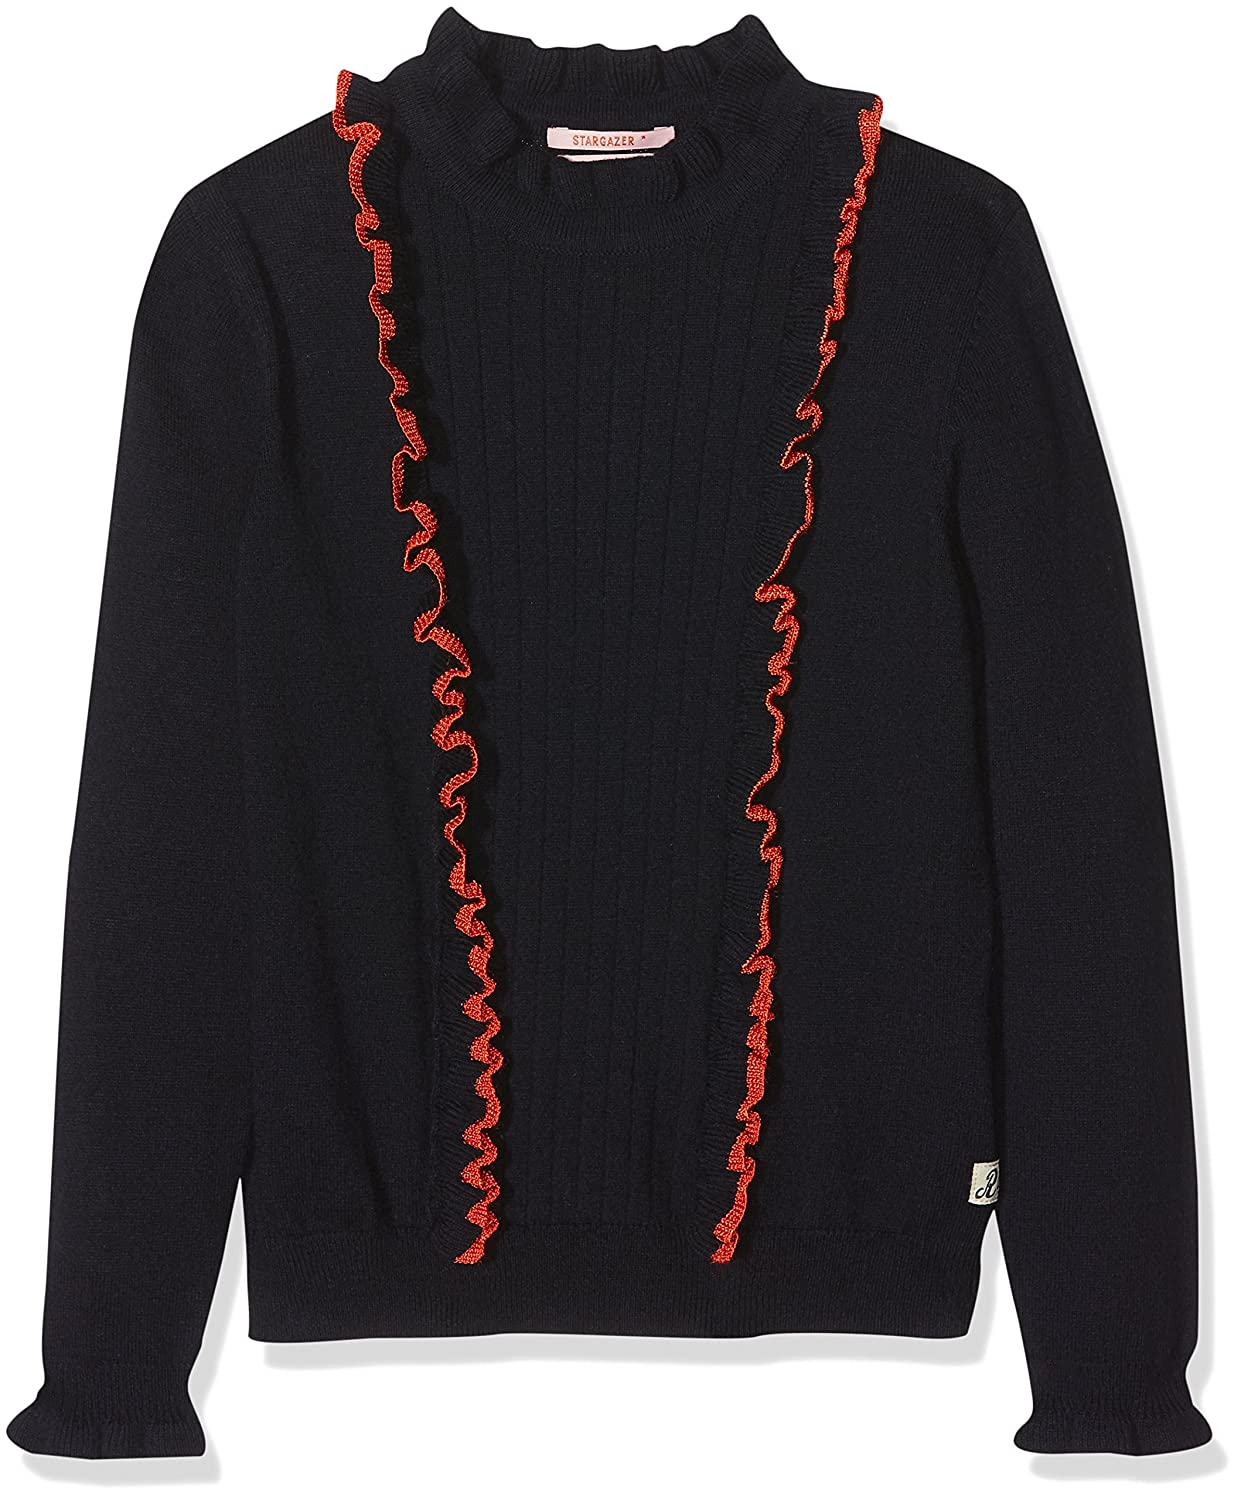 Scotch & Soda Girl's Crew Neck Pull with Ruffles Jumper Scotch & Soda R´Belle 148453